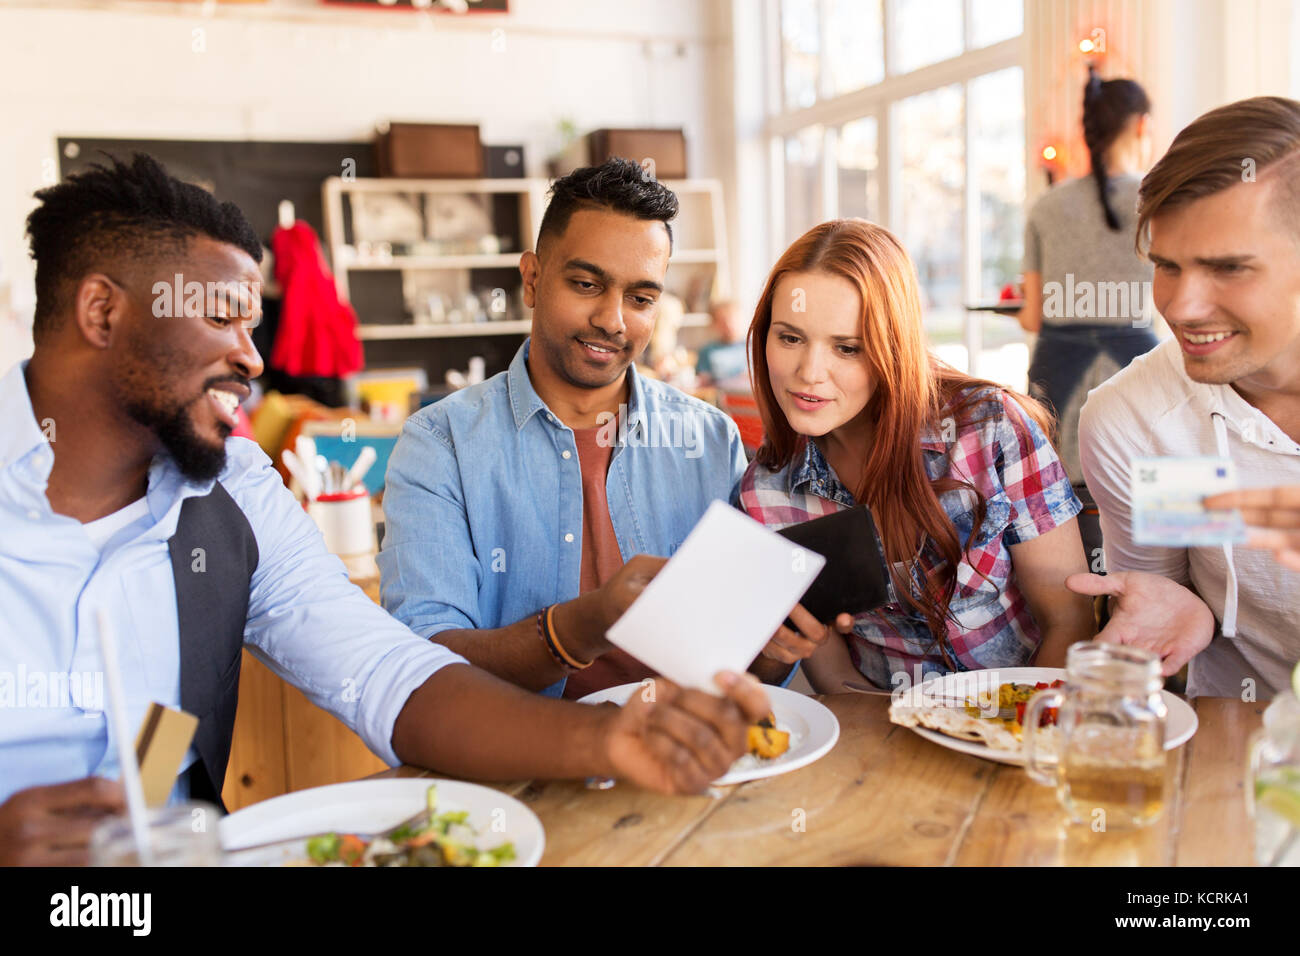 Happy Friends With Money Paying Bill At Restaurant Stock